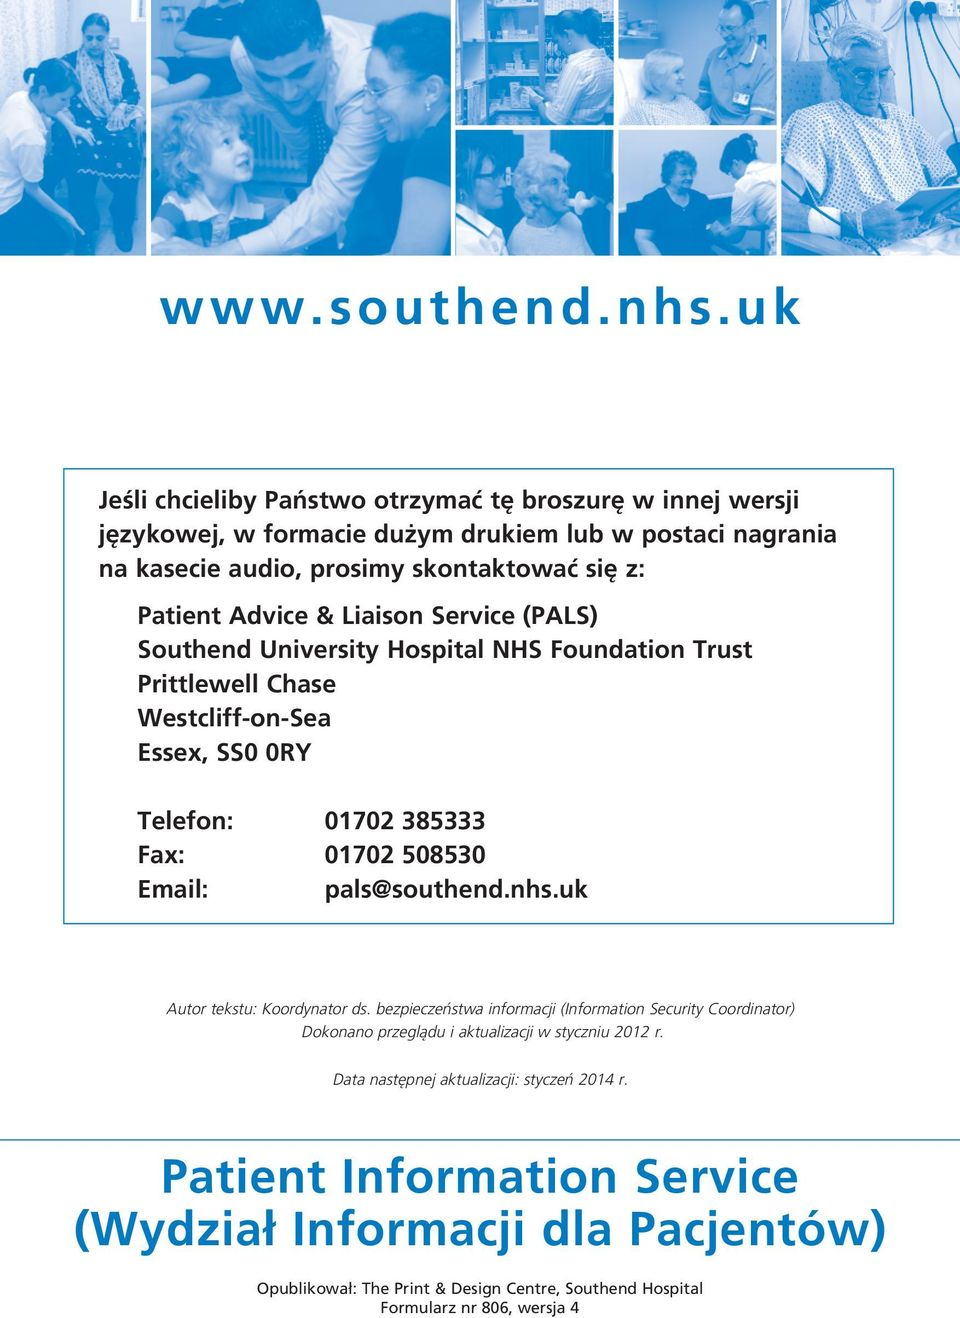 & Liaison Service (PALS) Southend University Hospital NHS Foundation Trust Prittlewell Chase Westcliff on Sea Essex, SS0 0RY Telefon: 01702 385333 Fax: 01702 508530 Email: